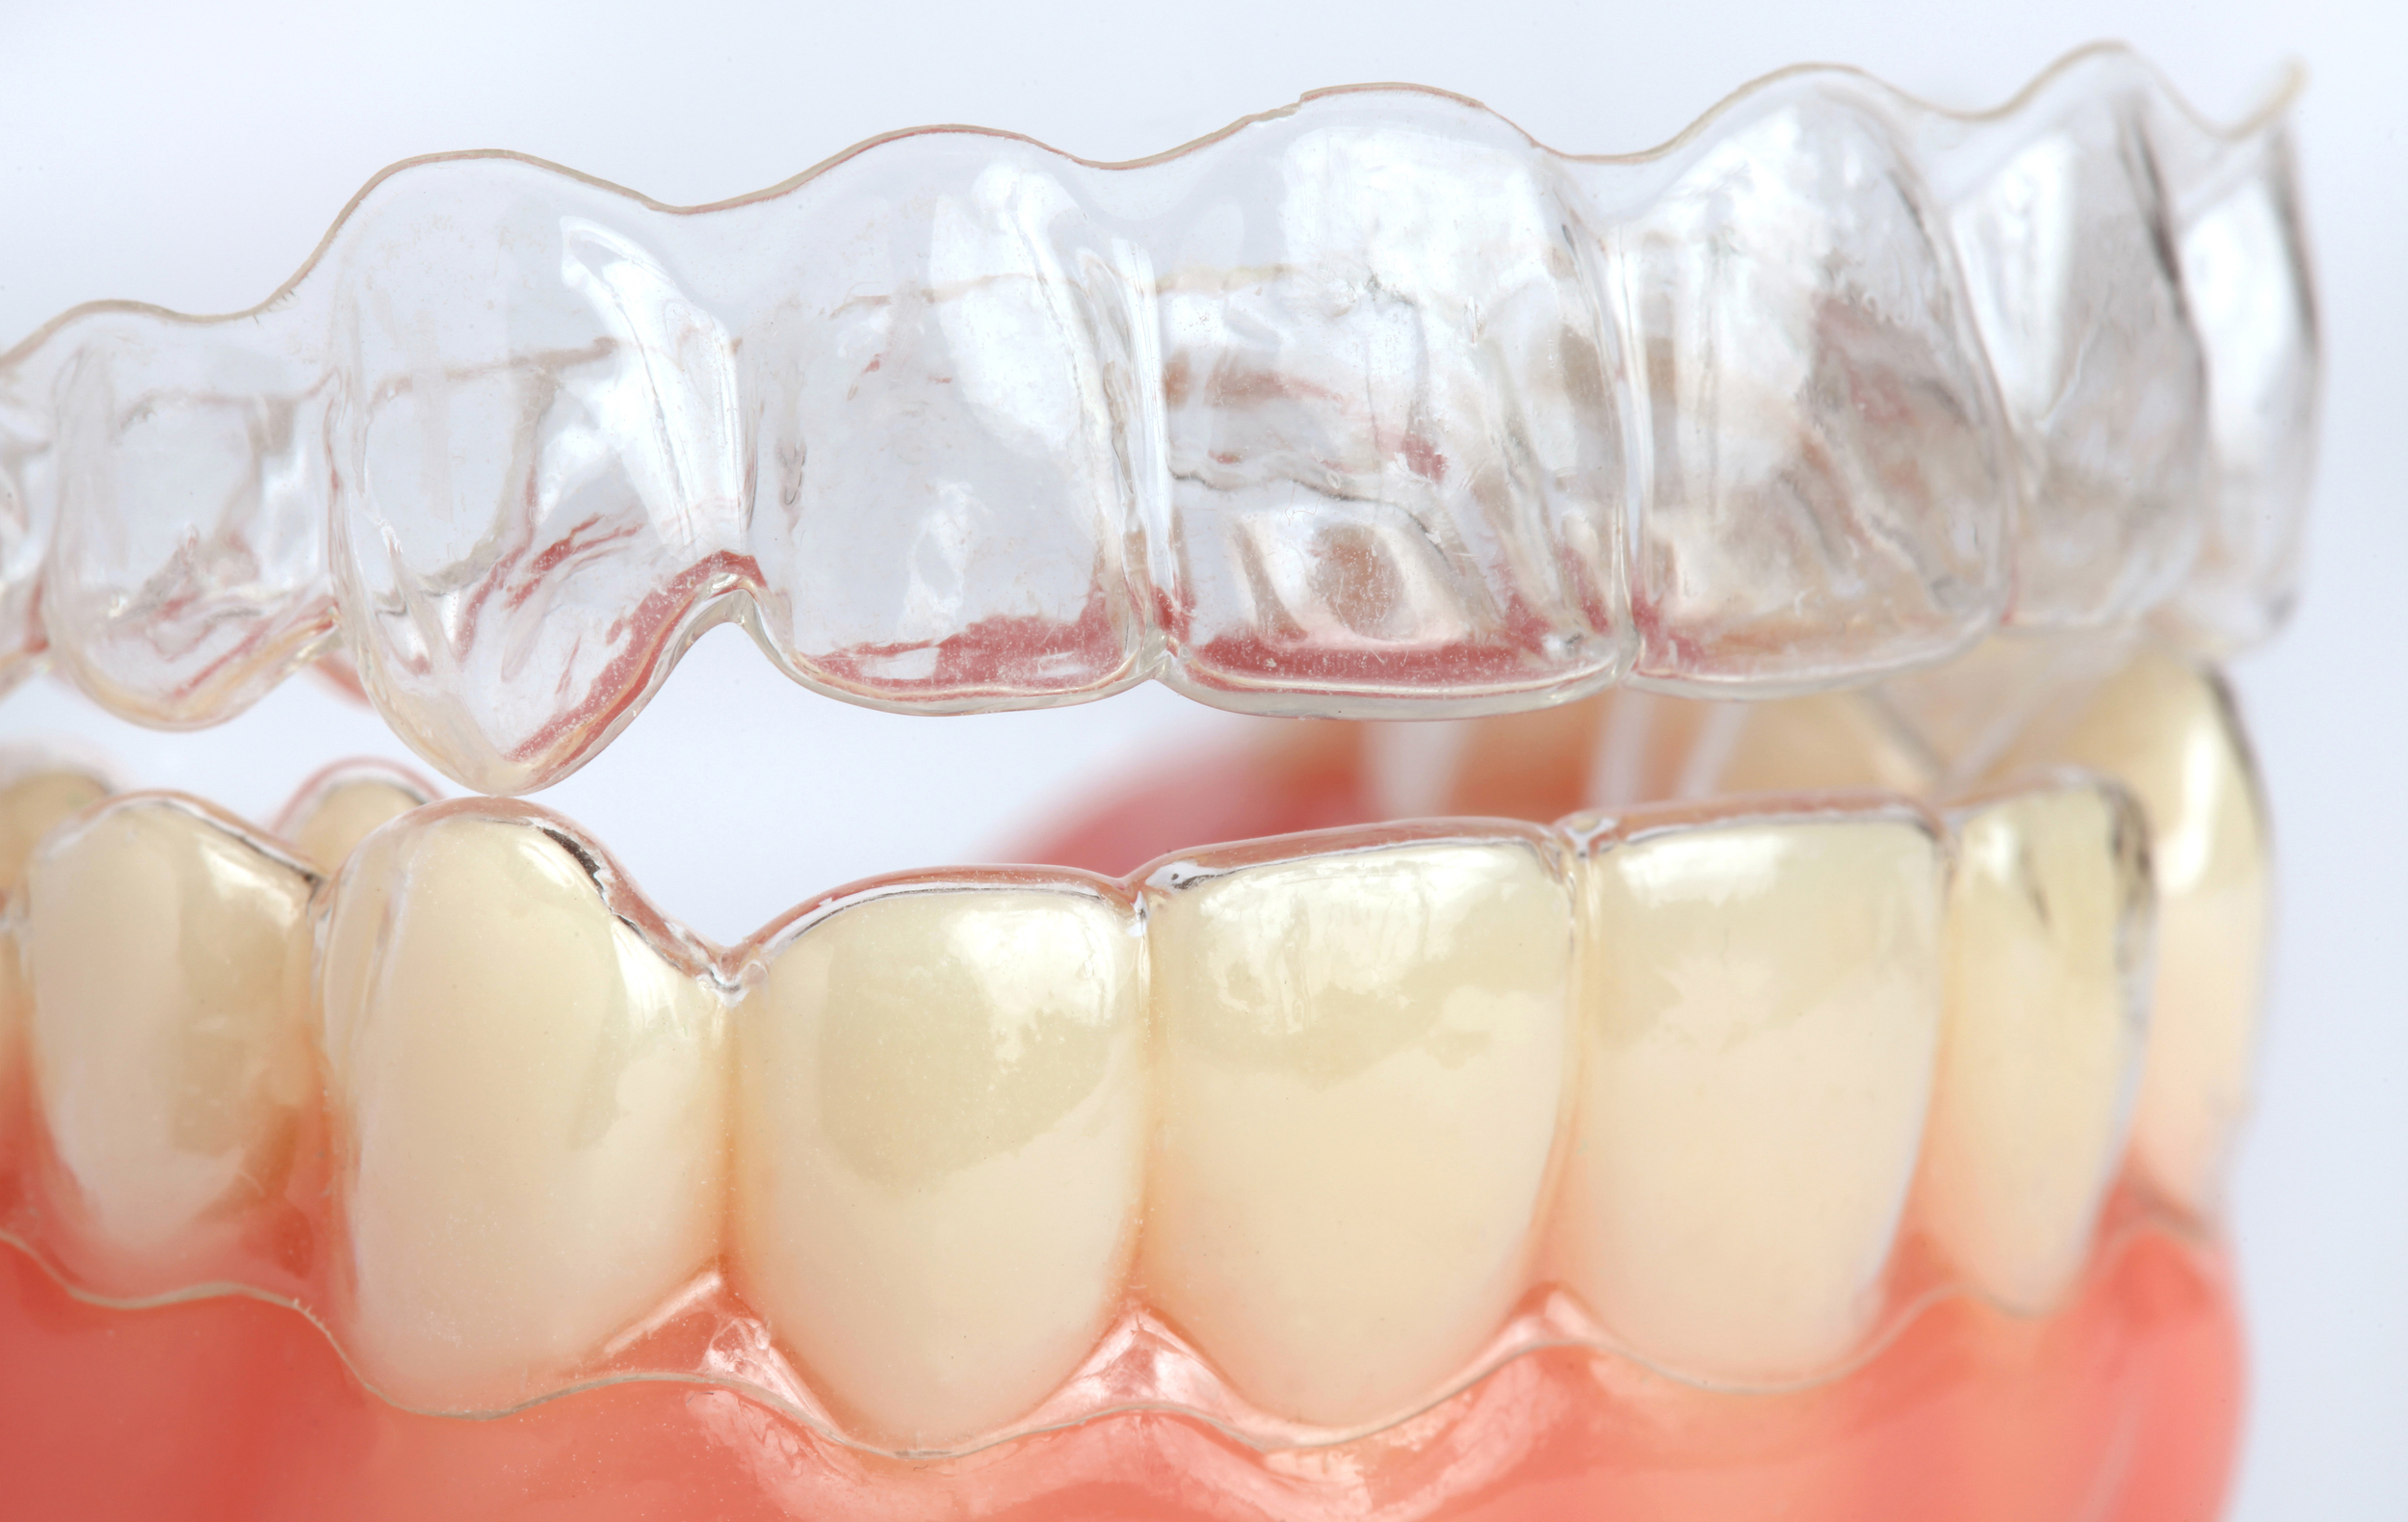 Invisalign aligners help you smile with confidence